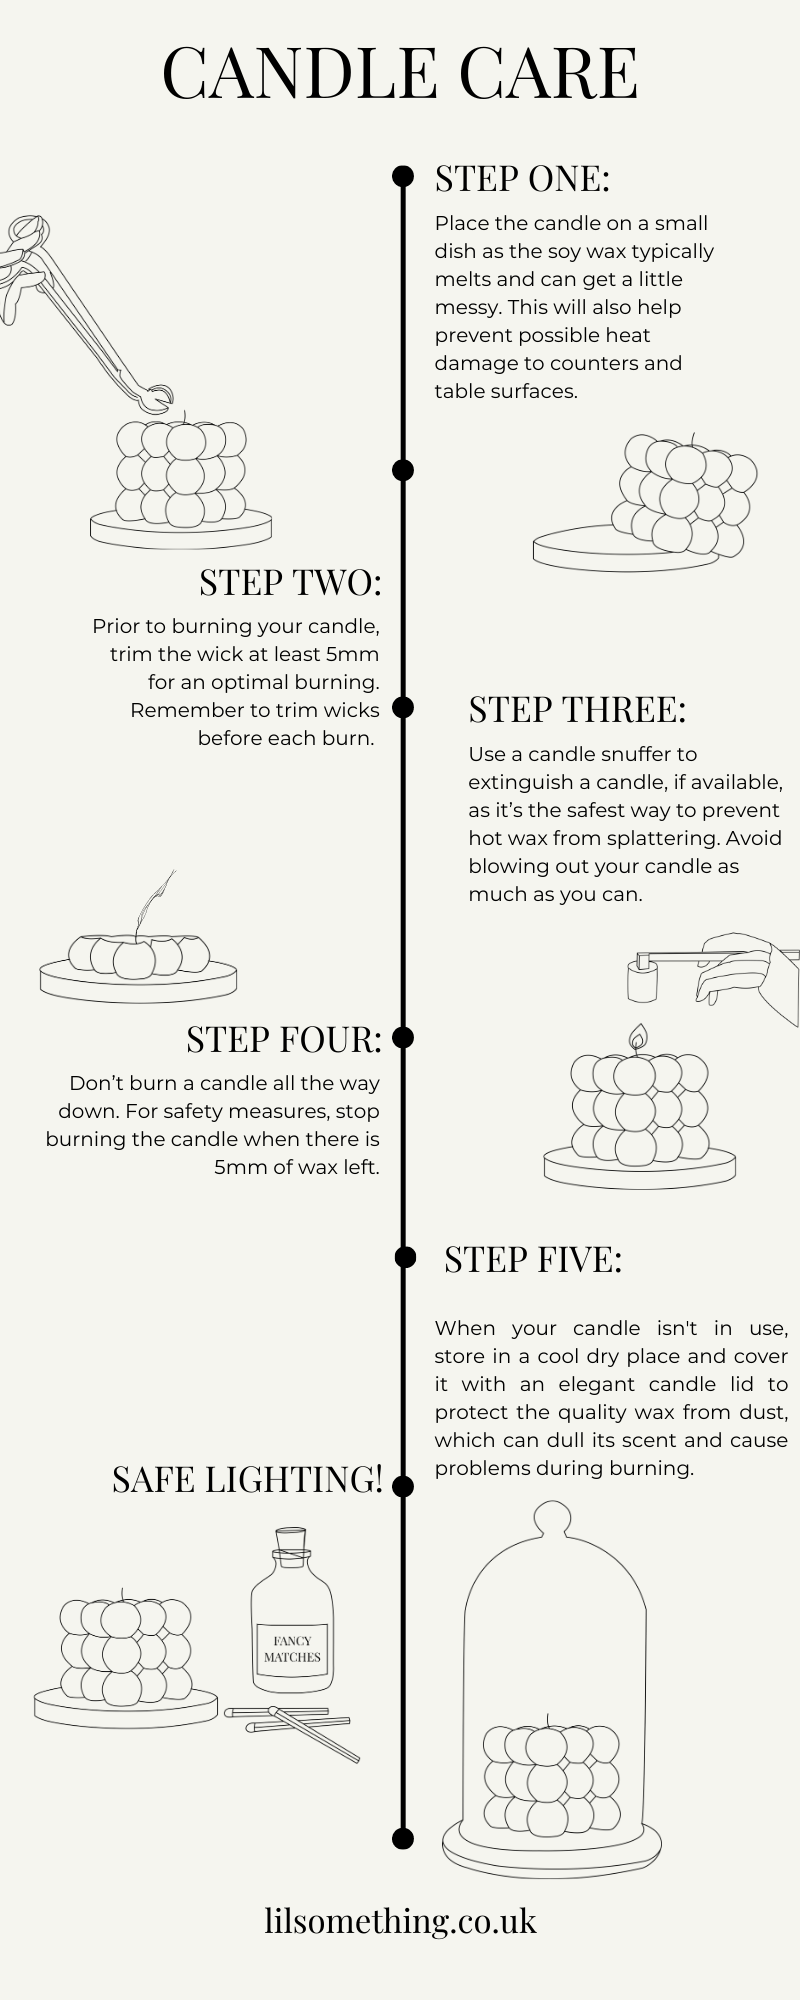 candle care guide in simple steps, how to take care of the candle, how to store the candles, before using the candle, when burning the candle